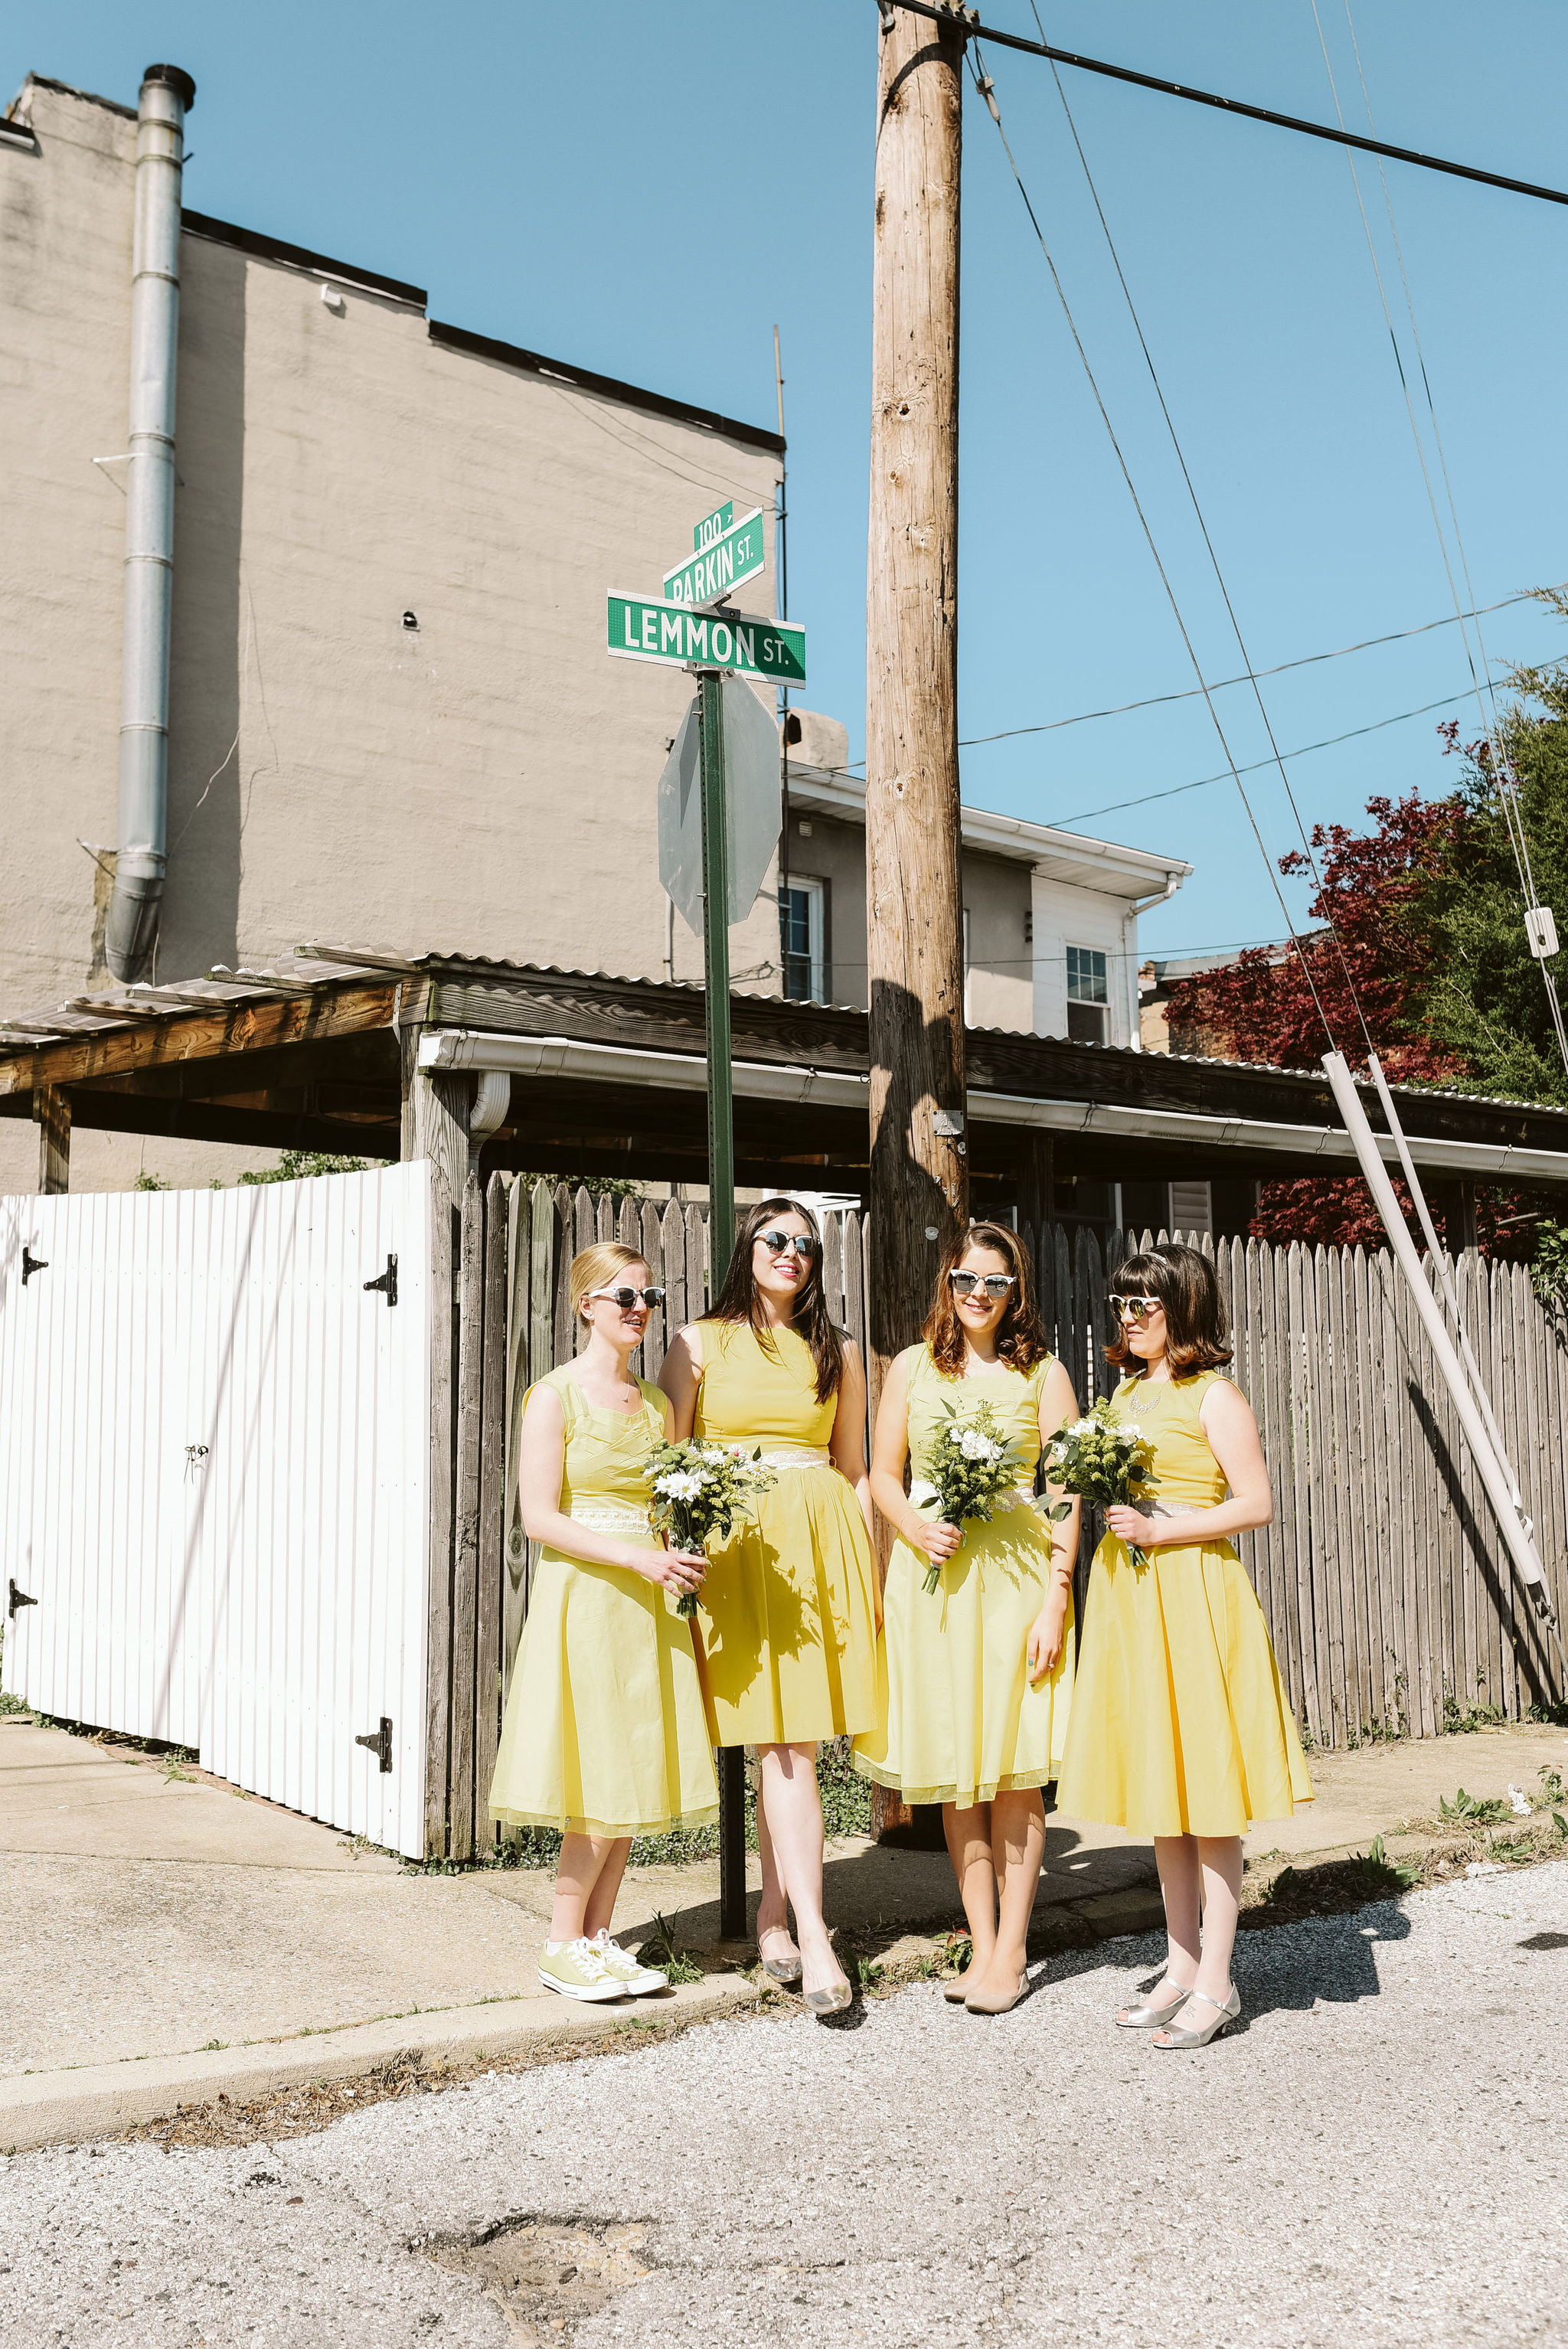 Baltimore, Church Wedding, Maryland Wedding Photographer, Vintage, Classic, 50s Style, Bridesmaid by Street Sign, Yellow Bridesmaid Dresses, Lemmon St, Baltimore City